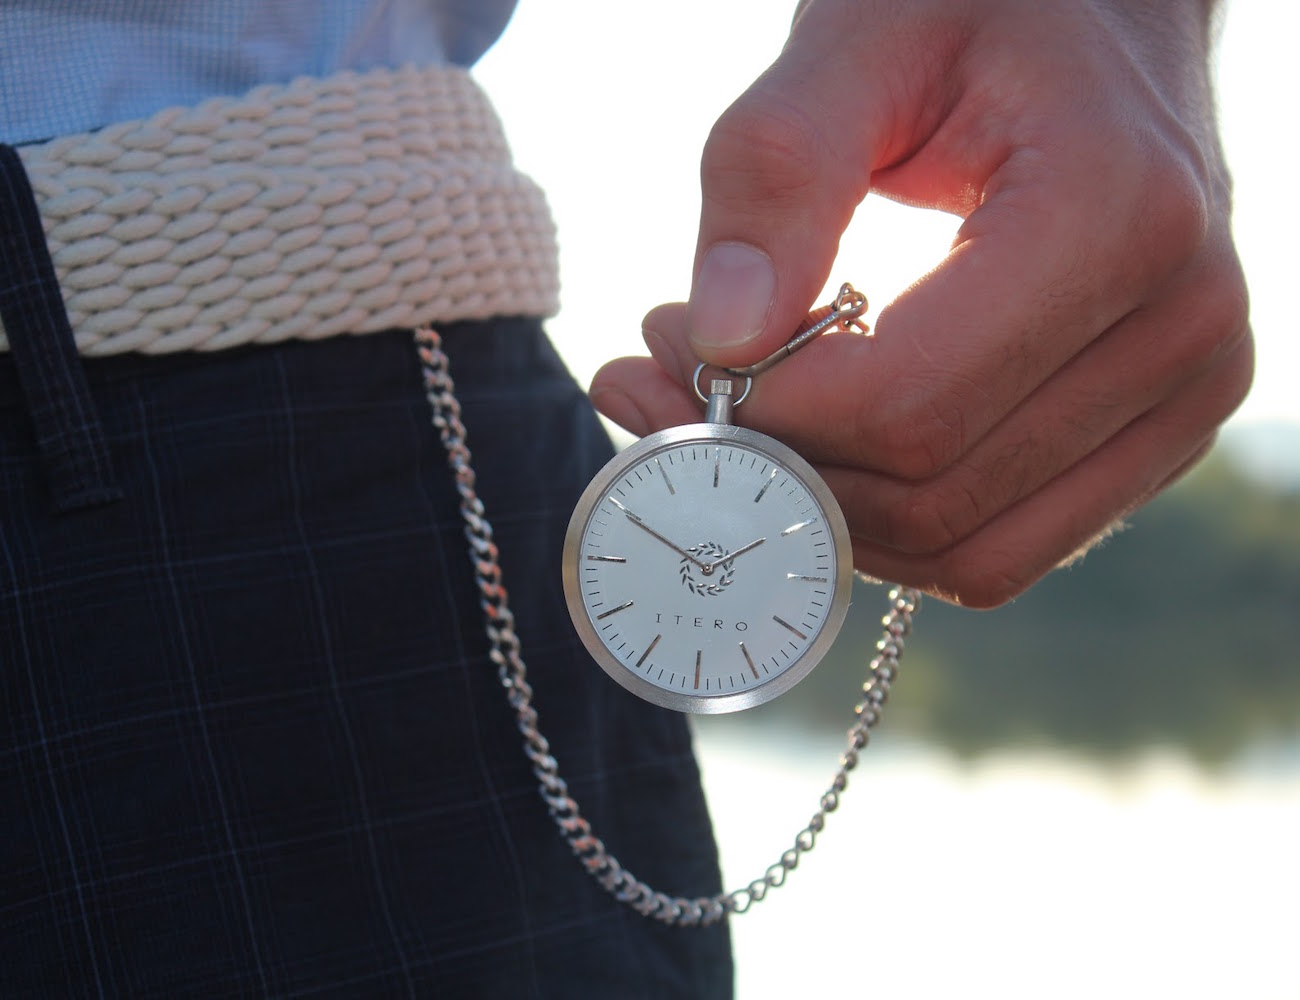 utero-pocket-watches-are-back-04